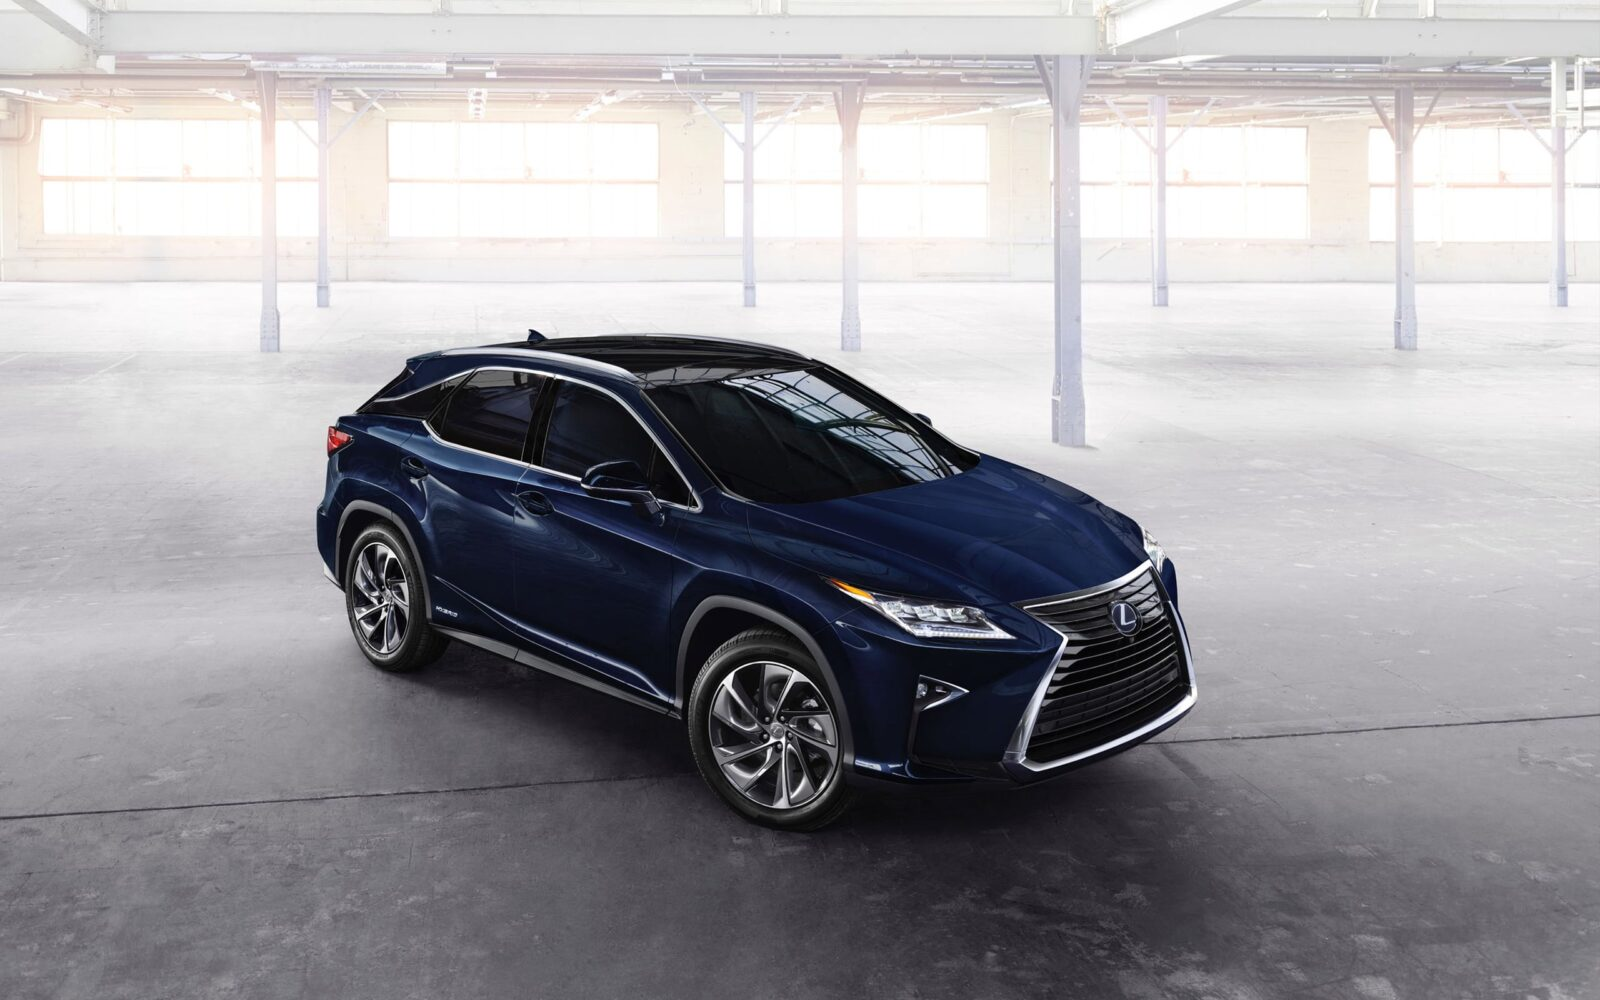 Blue Lexus RX 350 2016 wallpaper